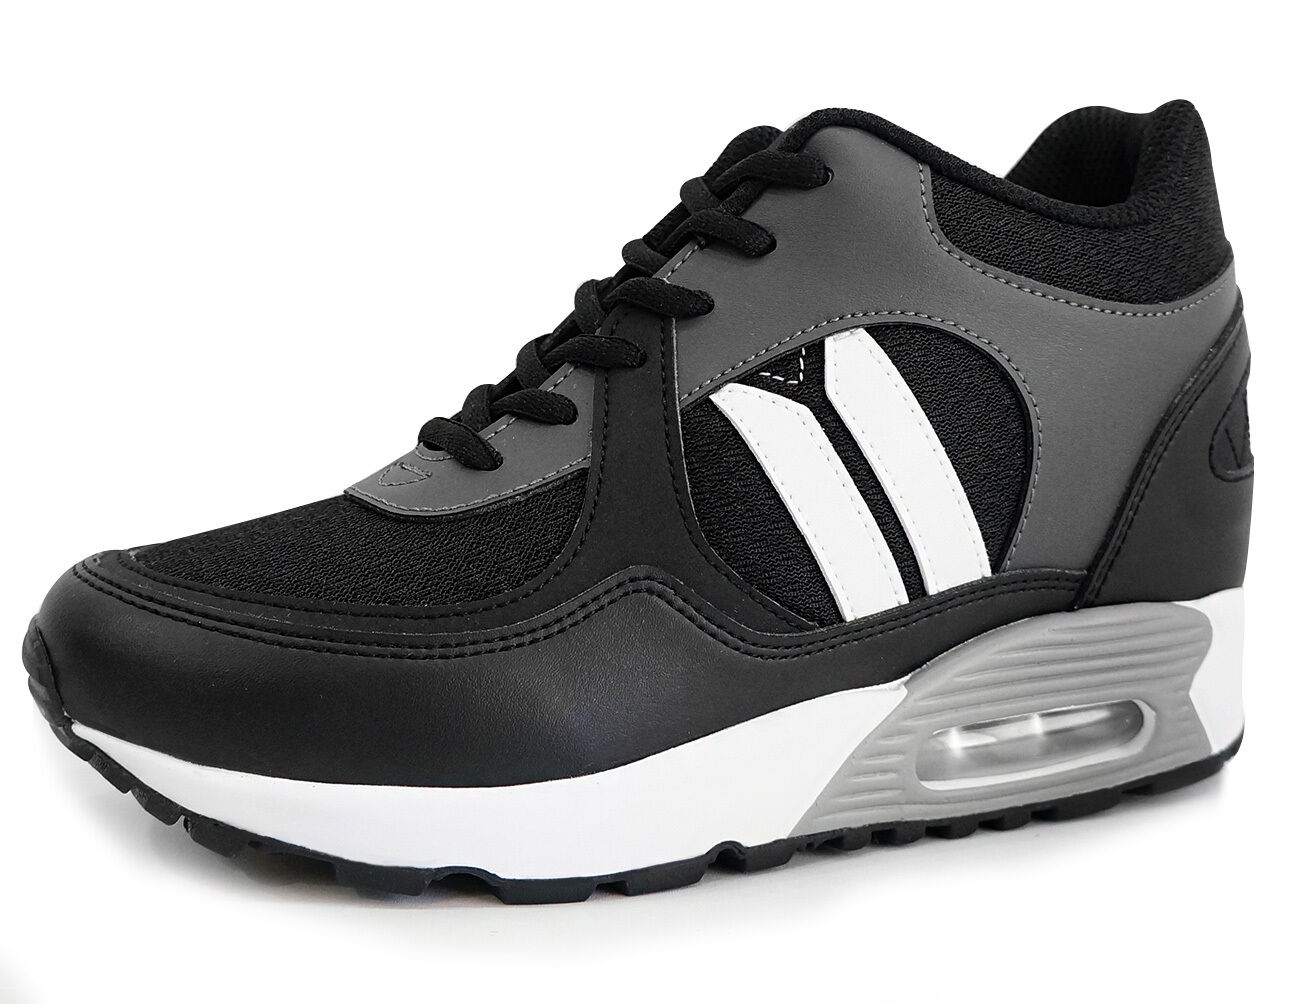 MNX15 Men's Elevator shoes LOTUS BLACK Height Increase 10cm by FedEx Fast Ship